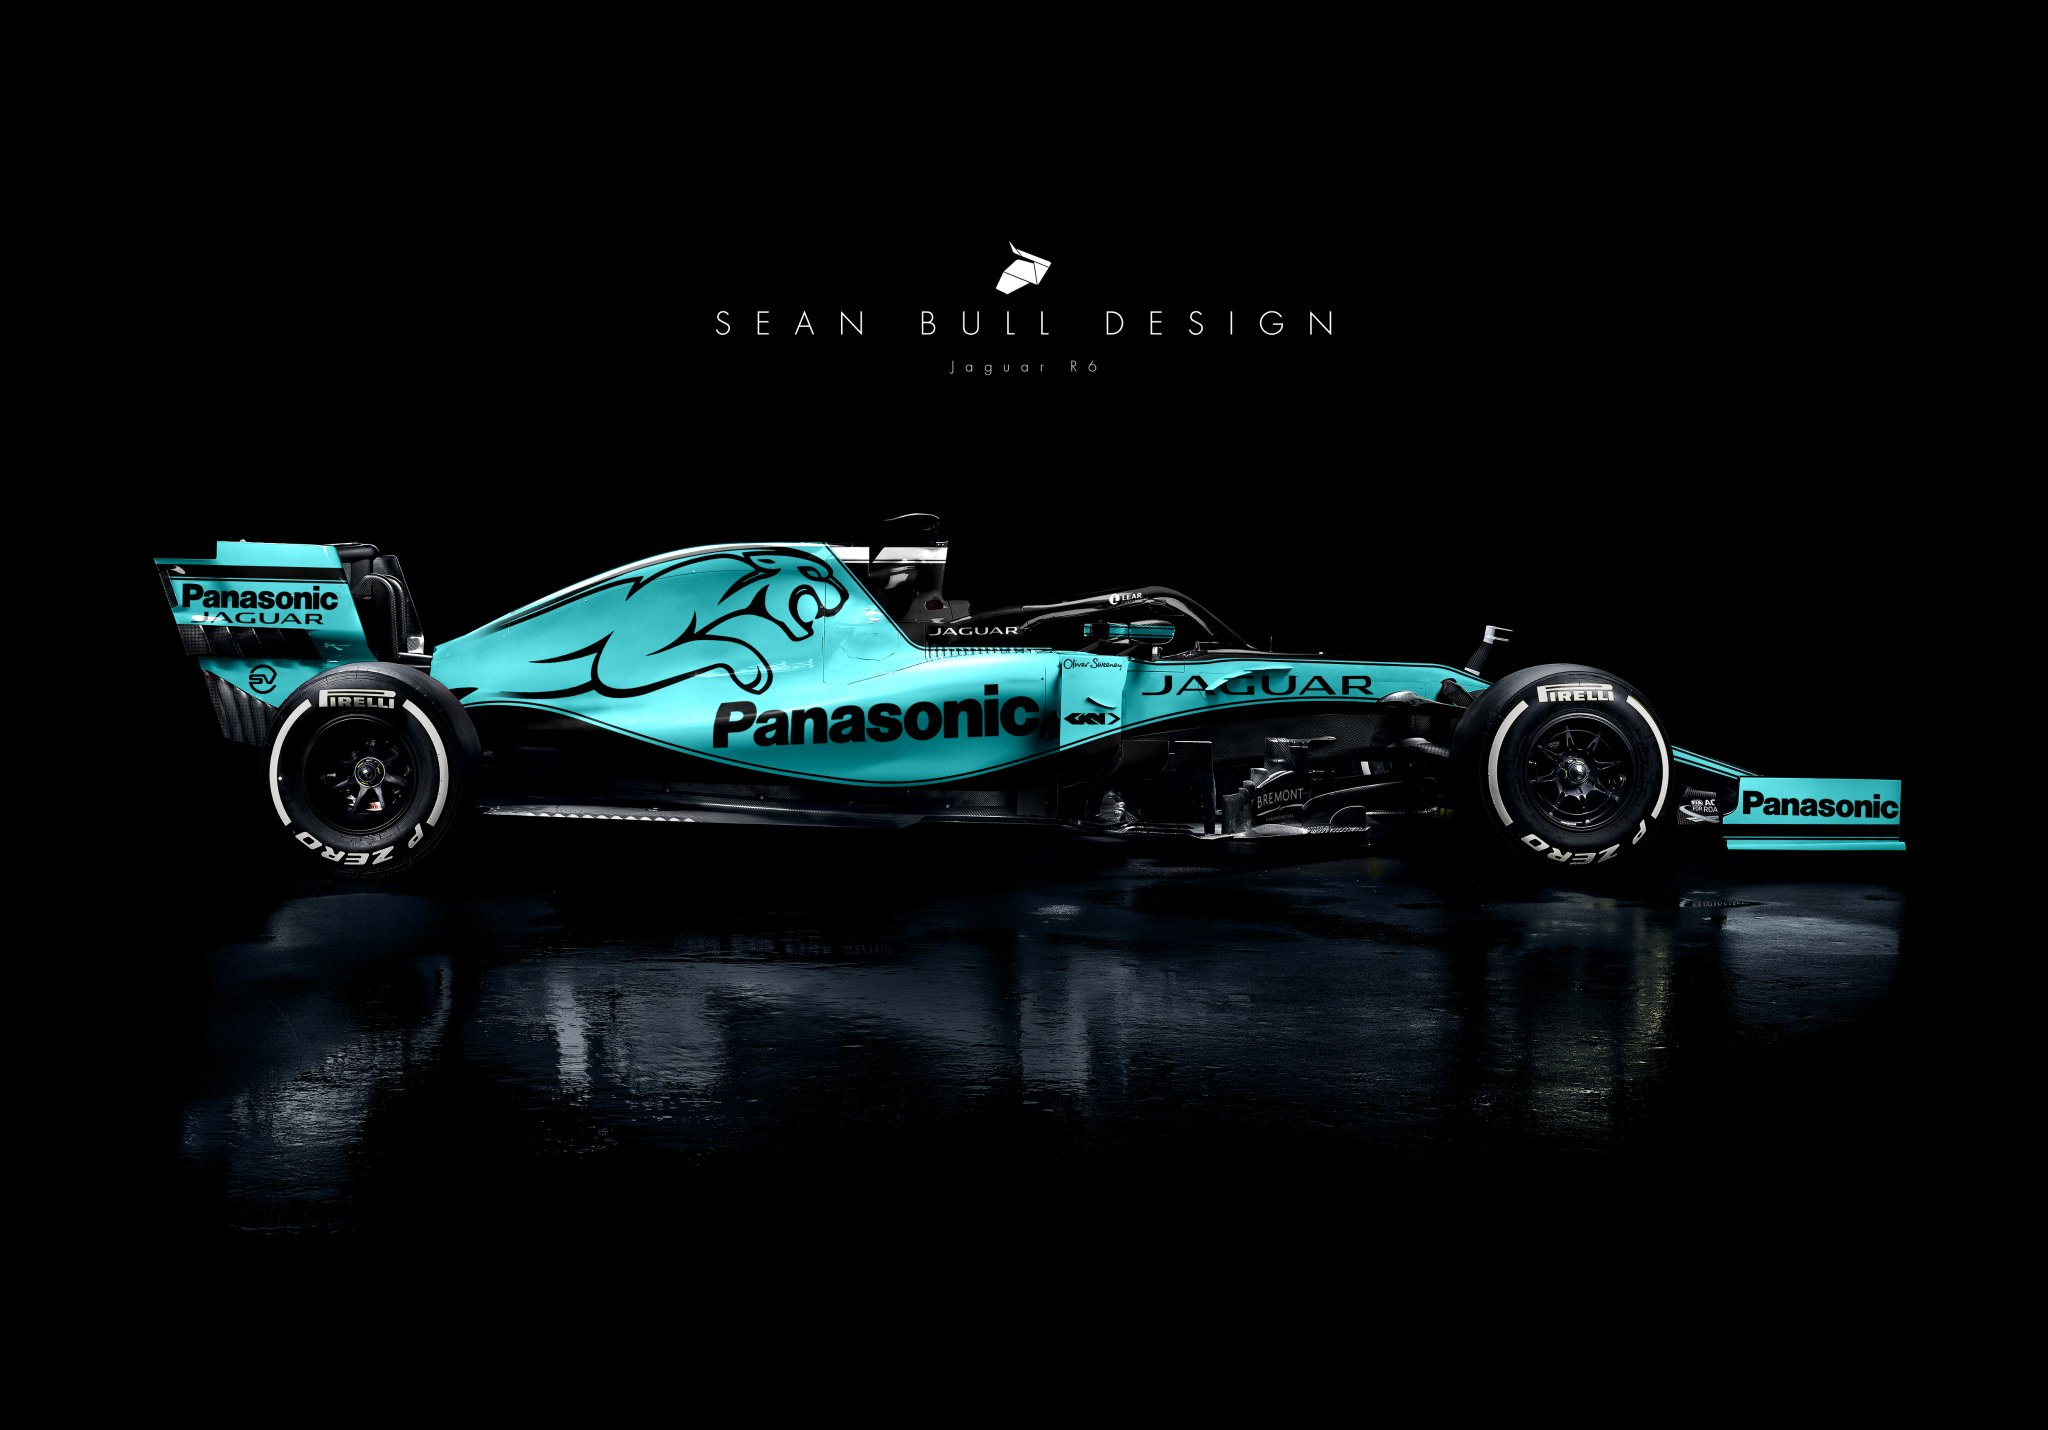 Sean Bull Design On Twitter Jaguar F1 Livery Concept Utilising The More Modern Colour Palette Seen In Formula E And E Pace Concepts F1 F12019 Formula1 Livery Jaguar Jaguarracing Https T Co 6t8zrk5yum